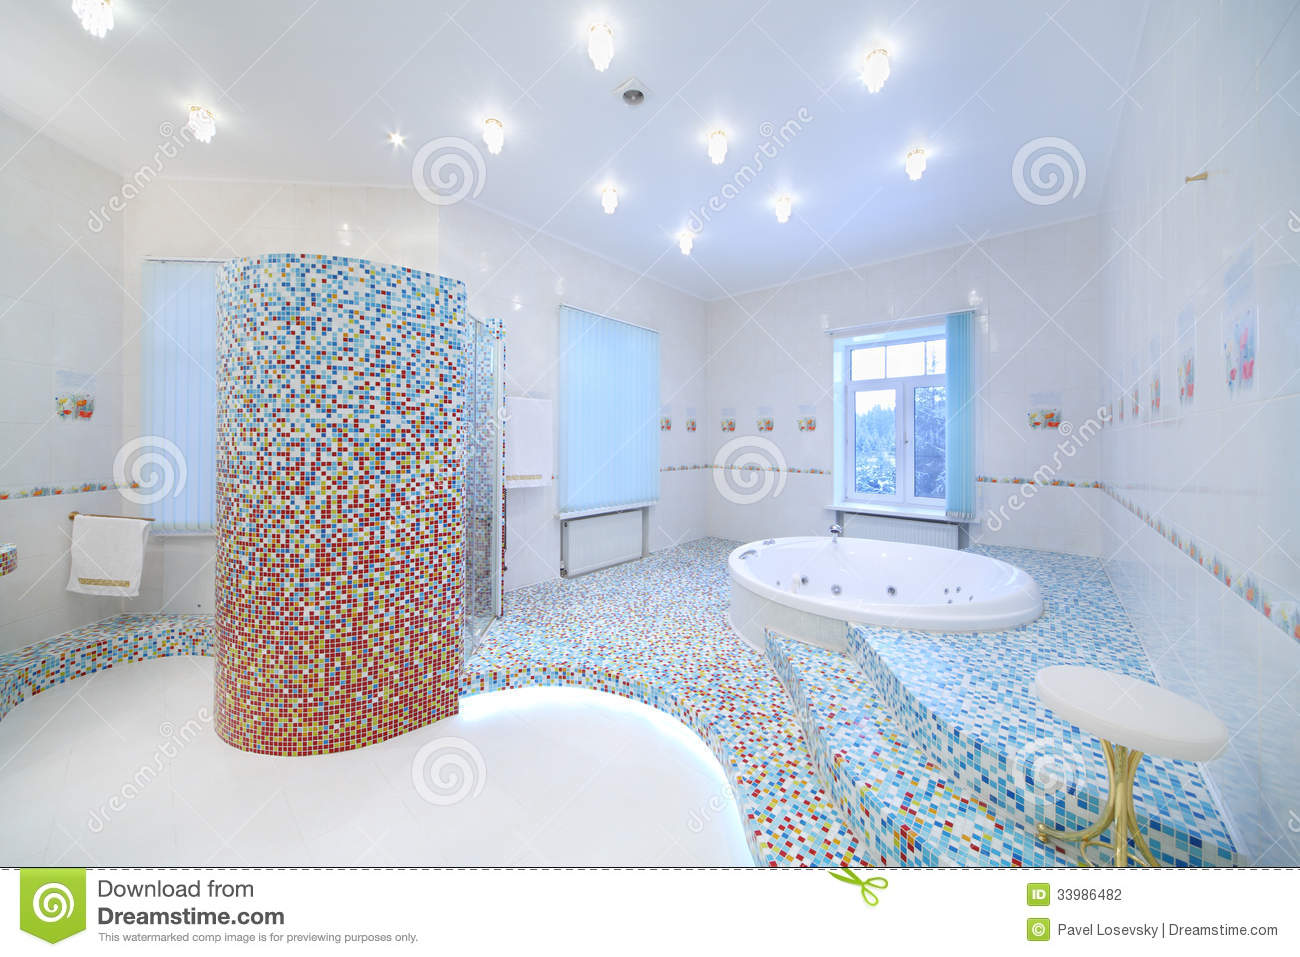 Light and clean bathroom with jacuzzi and shower cabin for Salle de bain baignoire